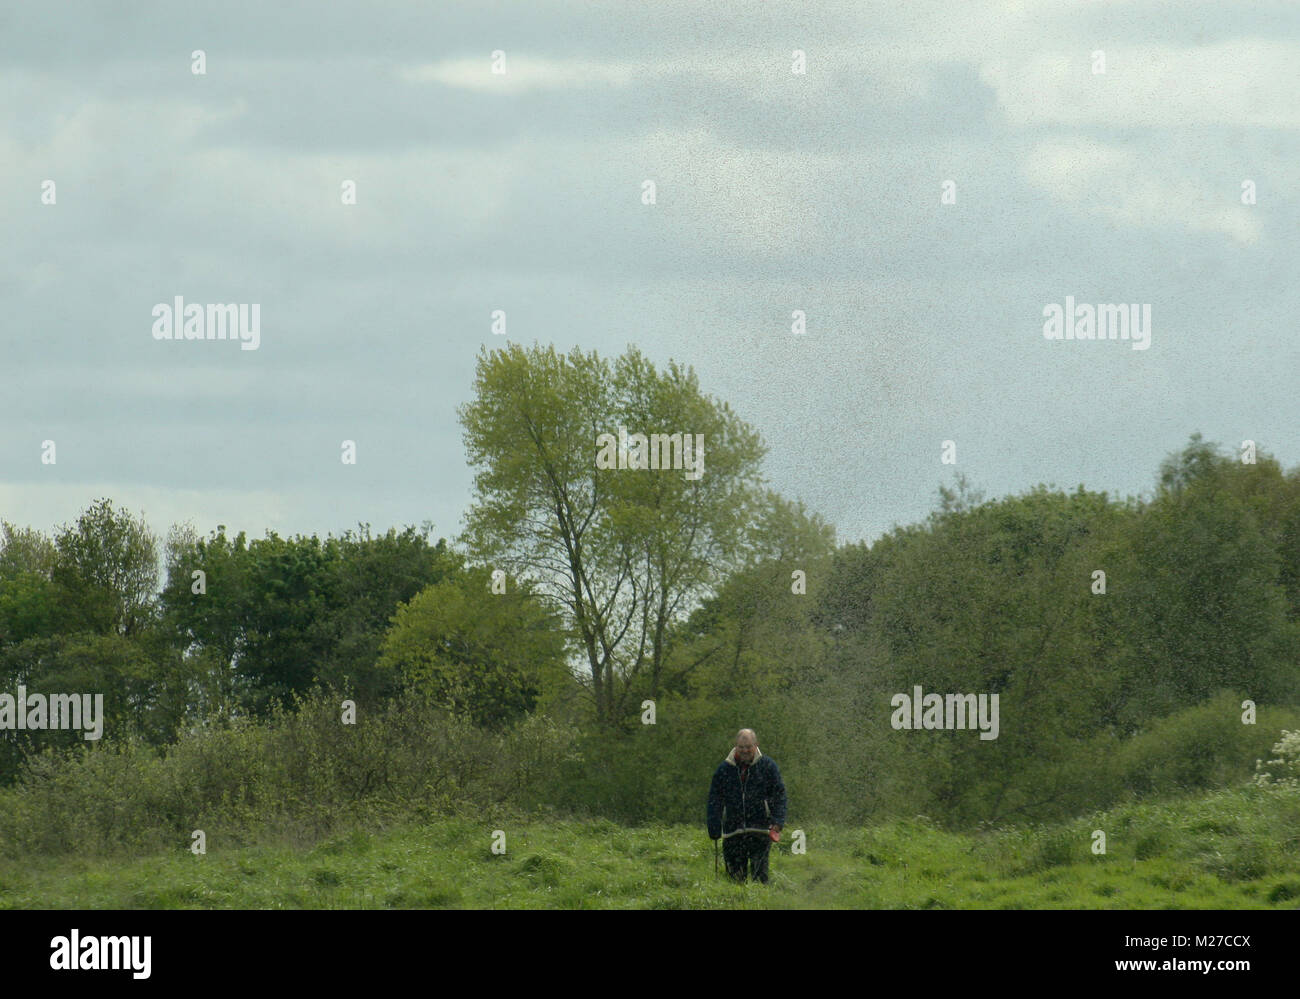 Man walking with dog surrounded by a hatch of mayflies. - Stock Image